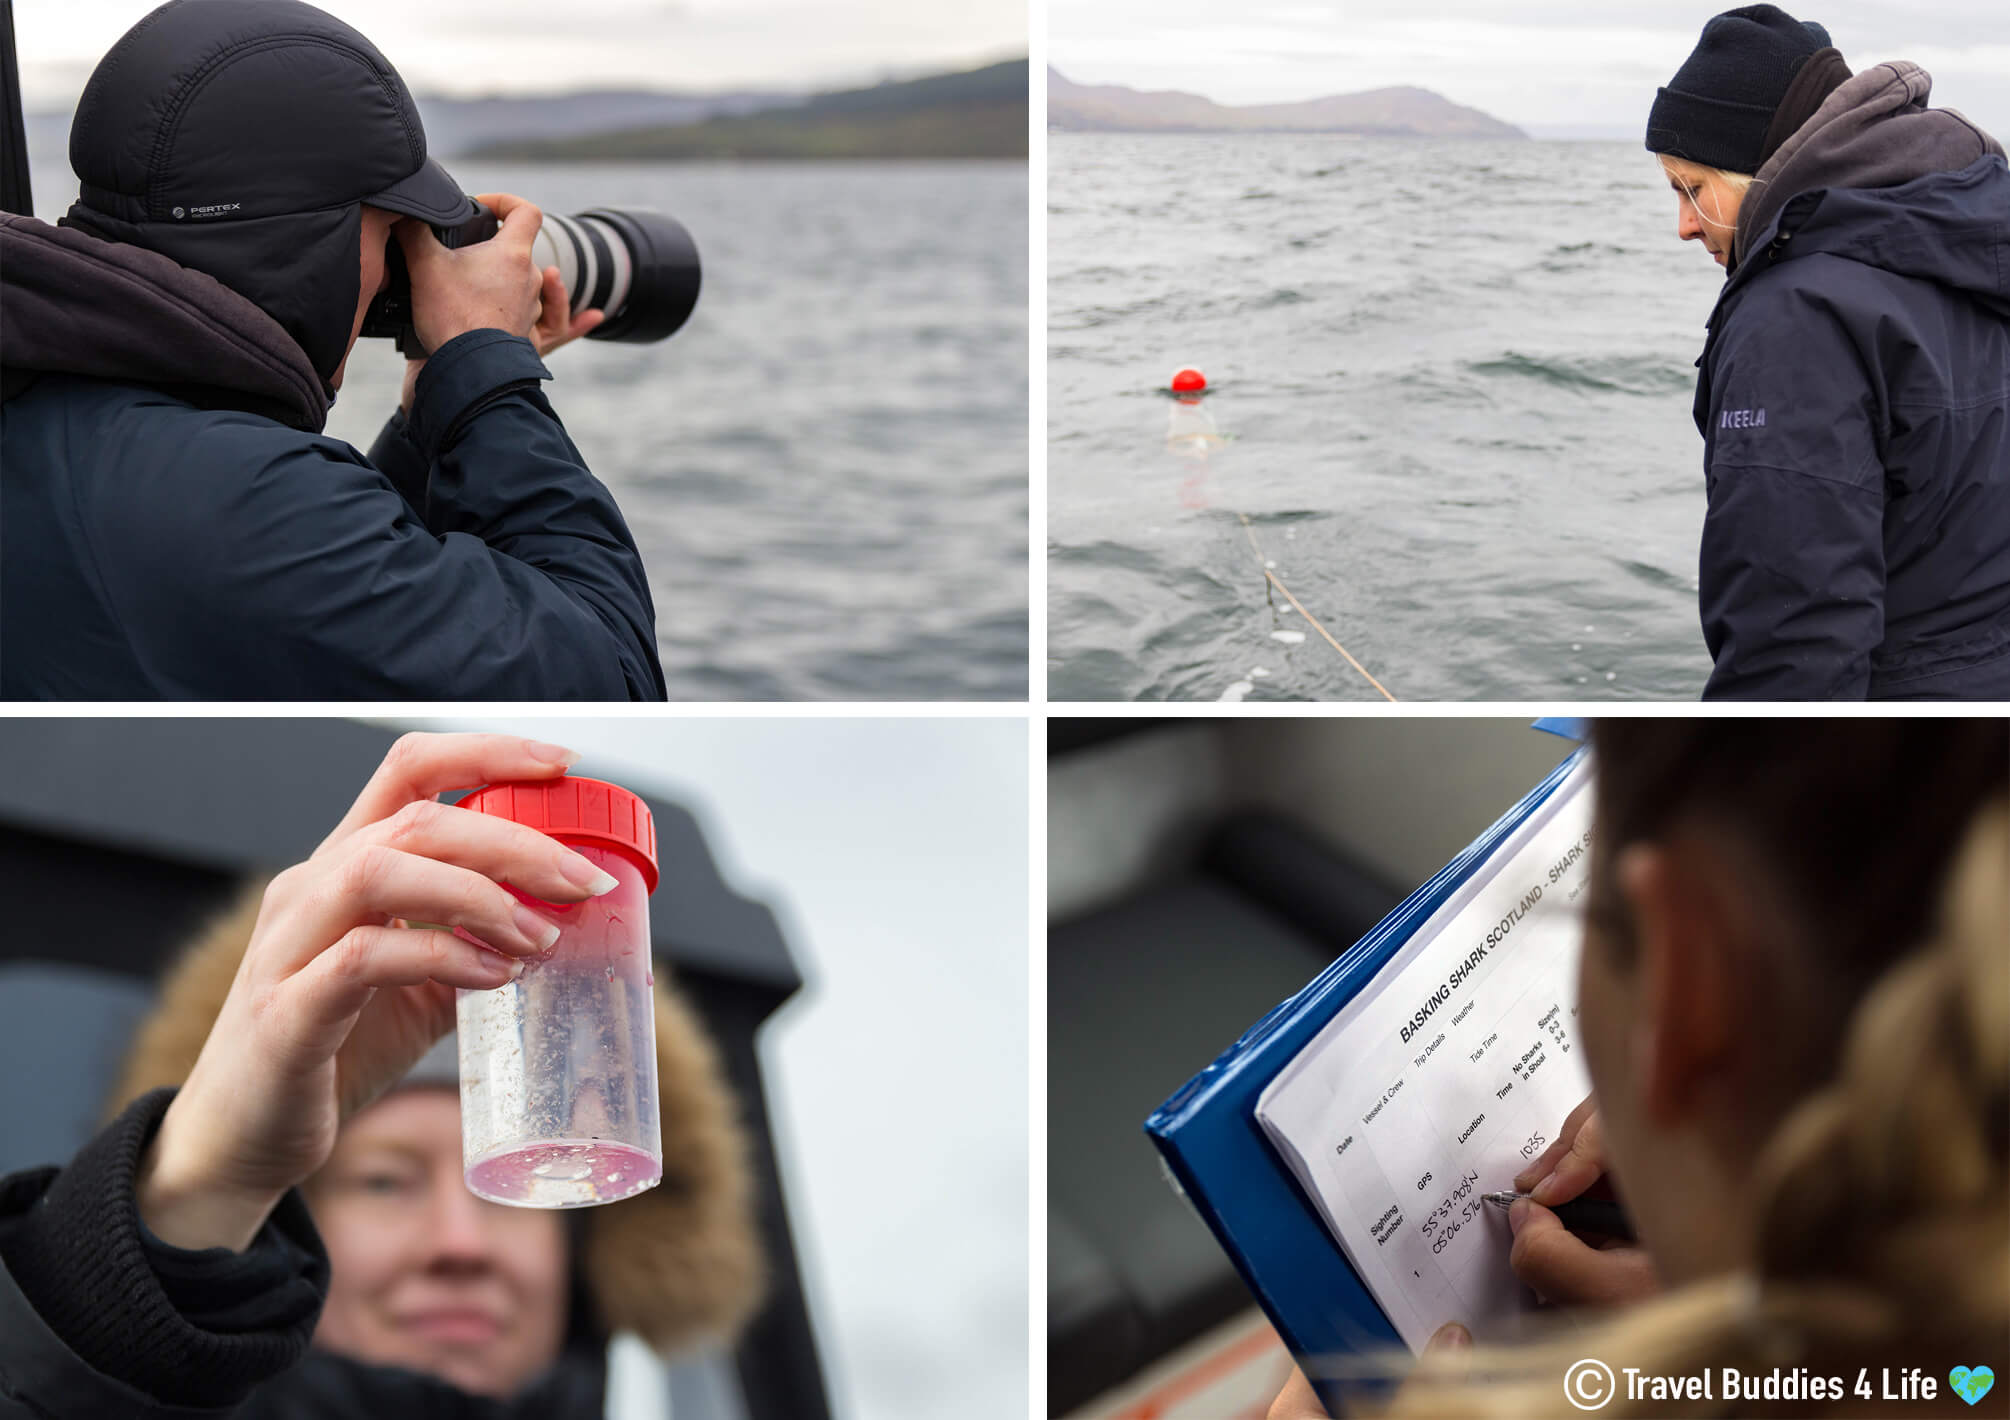 The Scientific Research Part Of The Basking Shark Scotland Research Expedition In The Firth Of Clyde, UK